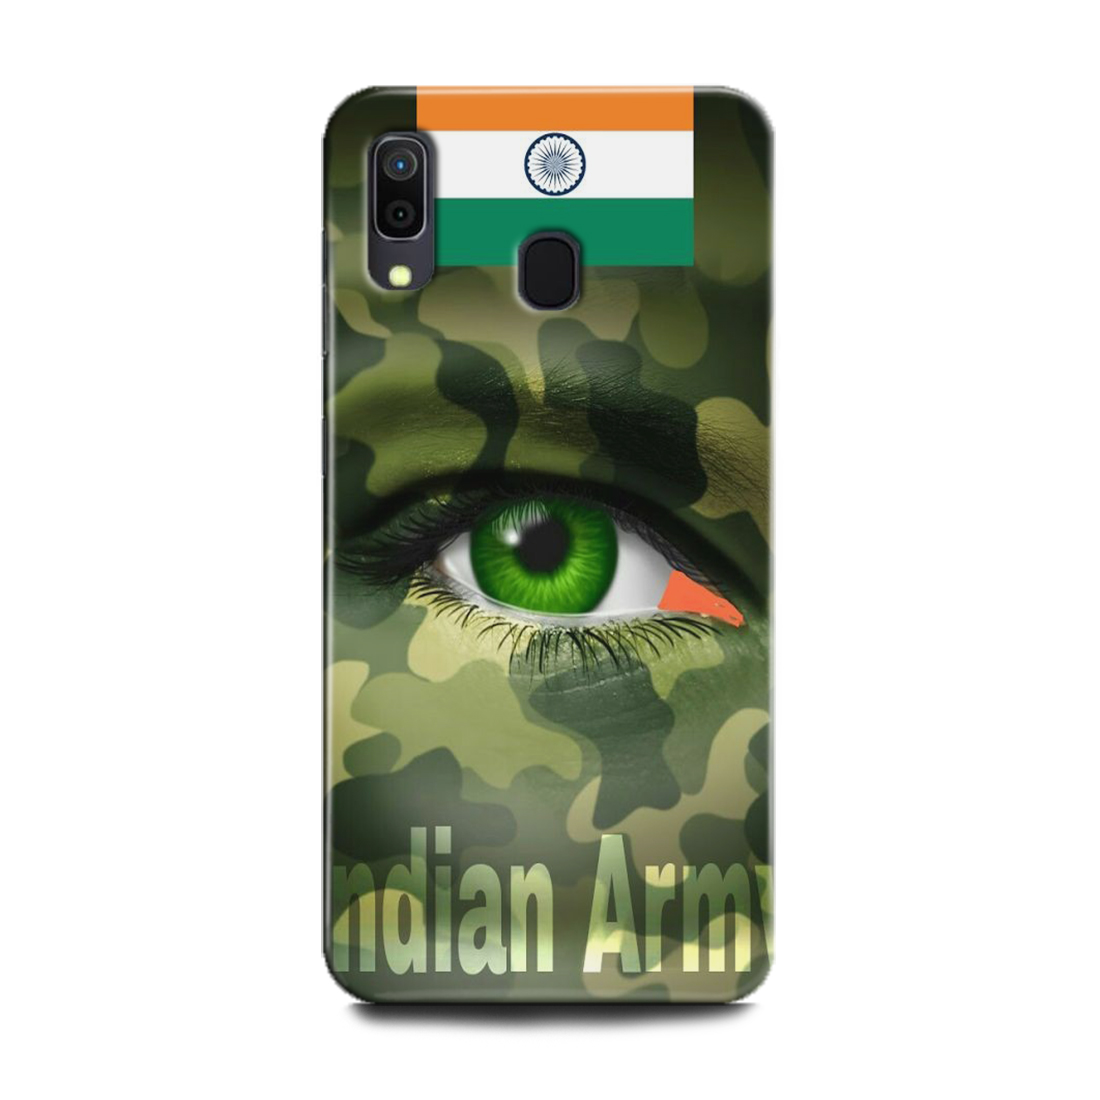 INDICRAFT Mobile Back Cover For Samsung Galaxy A20 Hard Case (Army, Txture, Army Uniform, Military, Como, Comoflage, Army Dress Code, A20) (AB-GalaxyA20-0910)